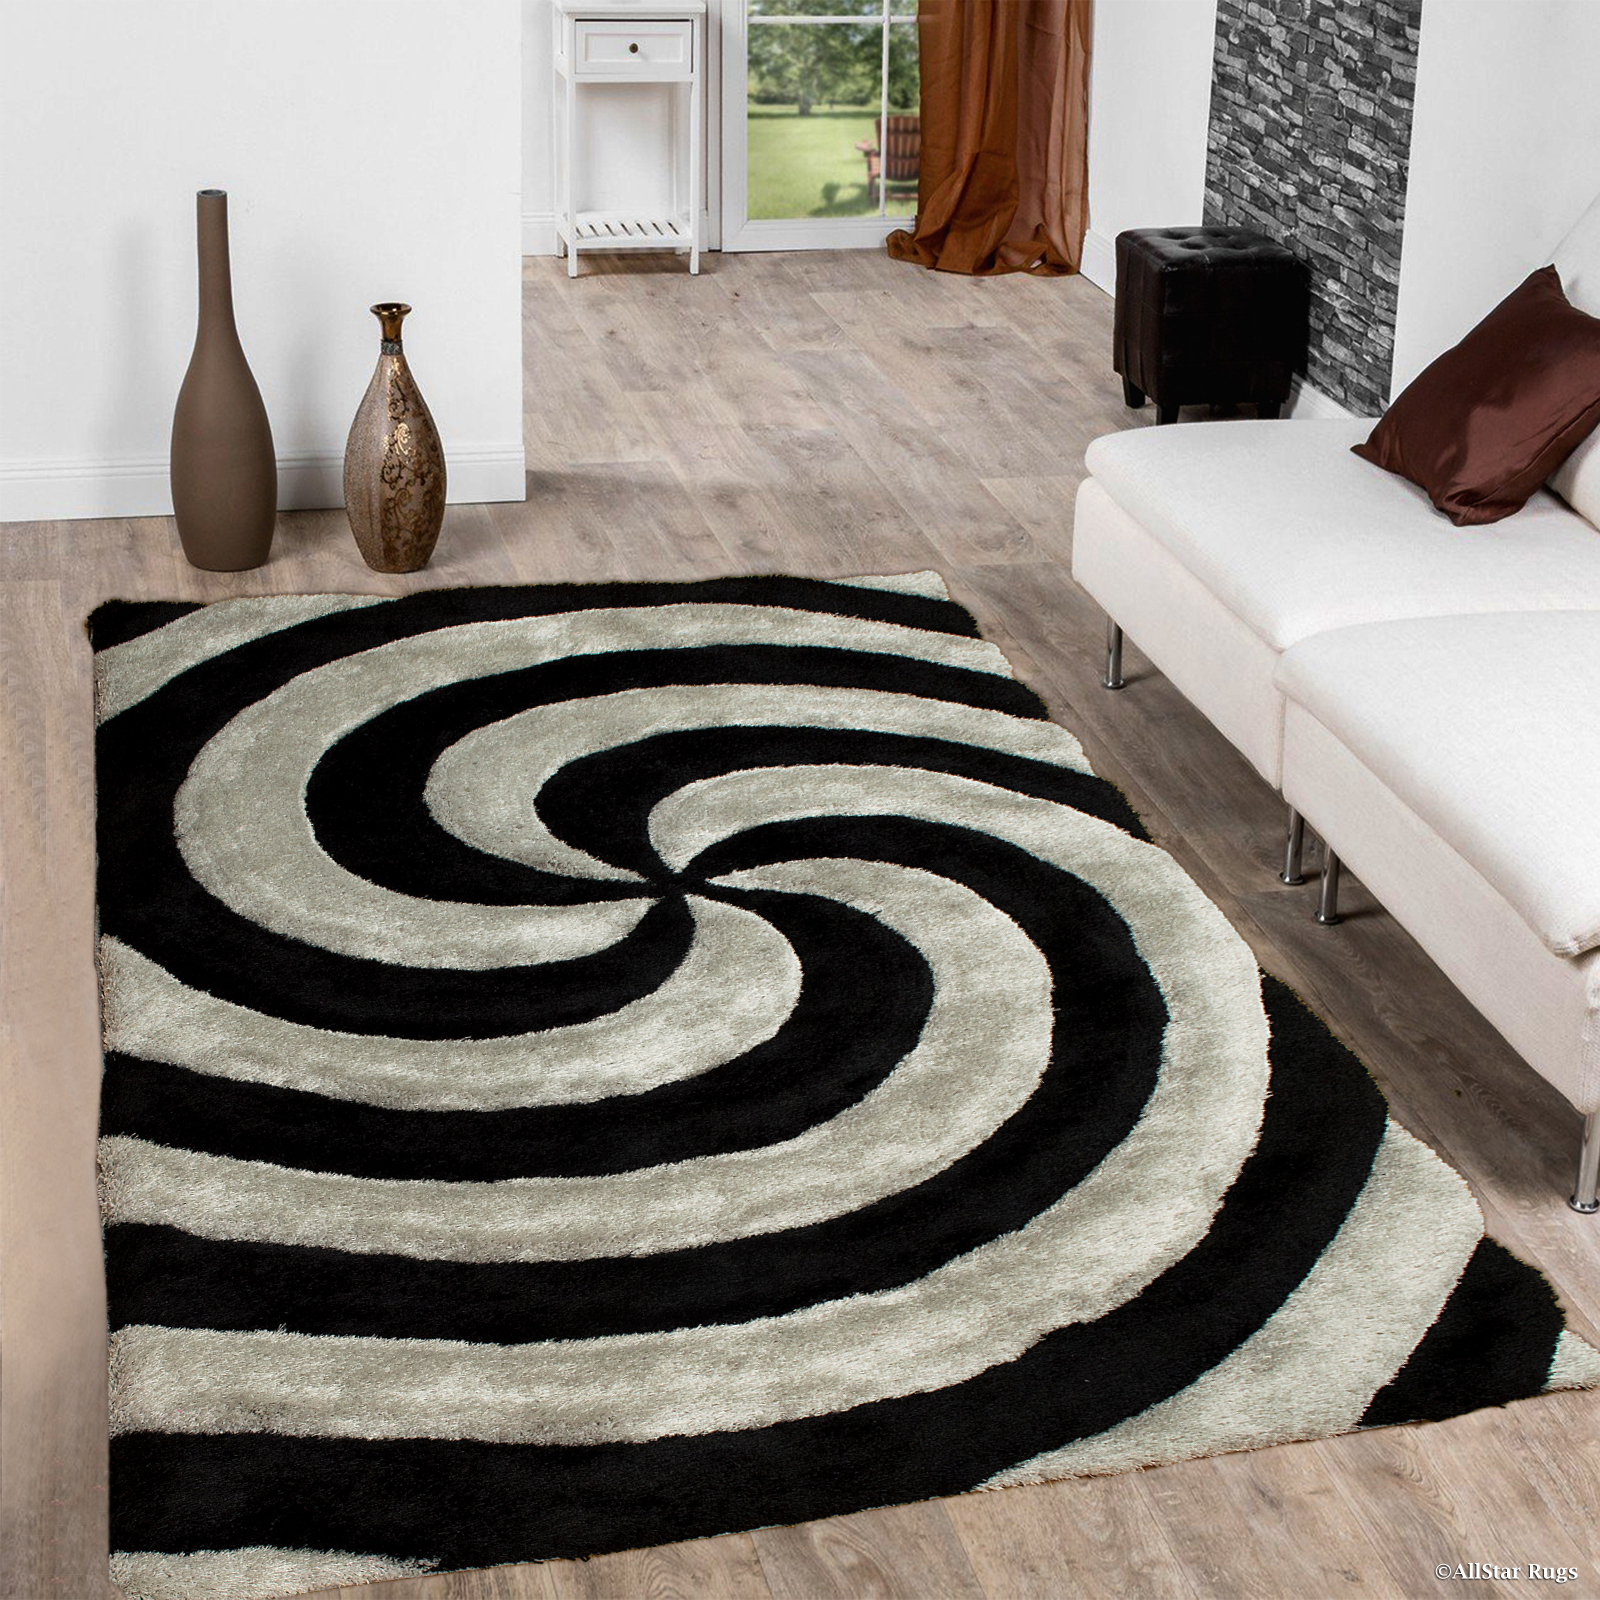 Allstar Grey Shaggy Area Rug with 3D Spiral Design. Contemporary Formal Casual Hand Tufted (5' x 7')